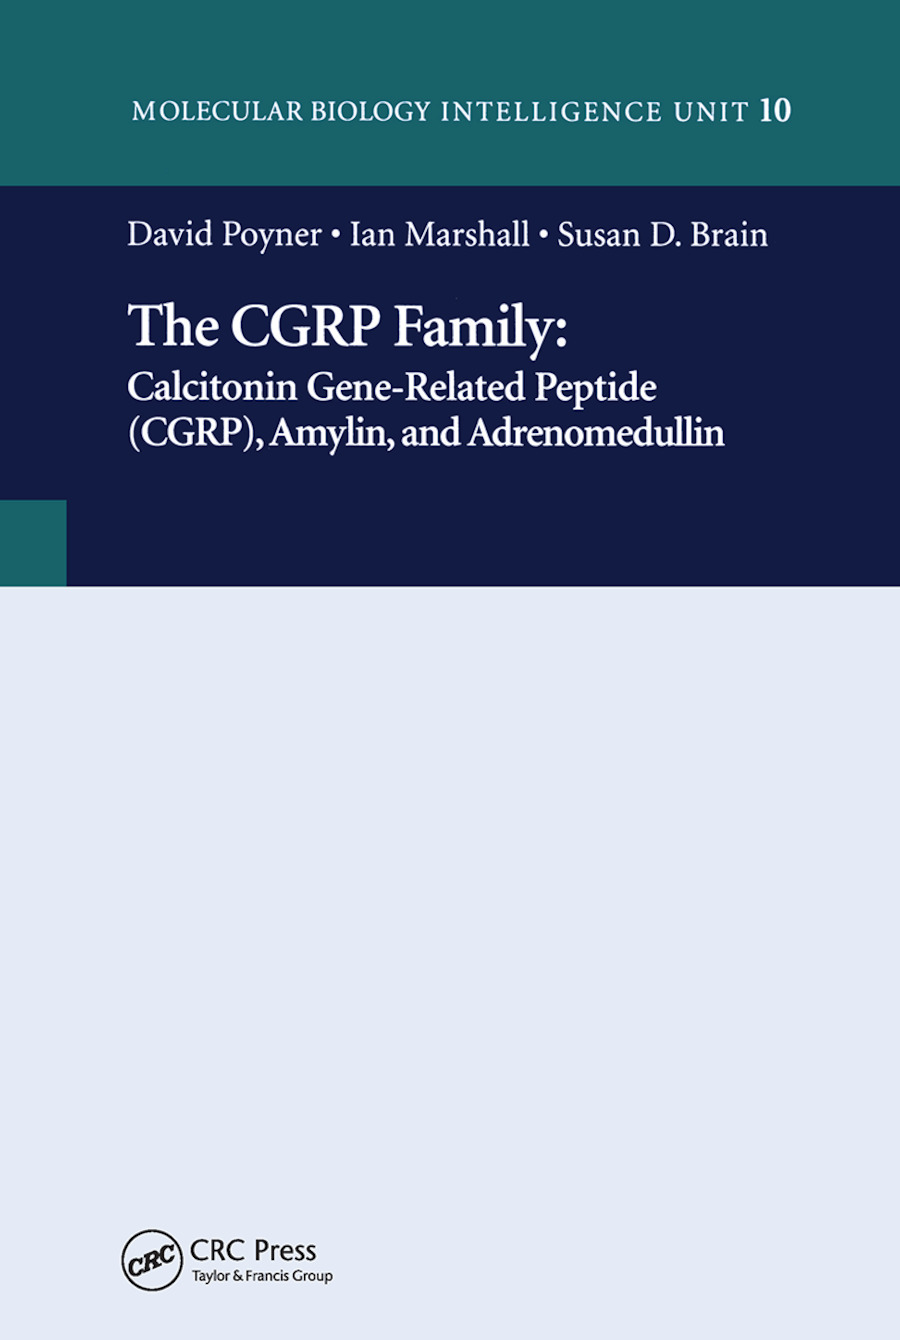 The CGRP Family: Calcitonin Gene-Related Peptide (CGRP), Amylin and Adrenomedullin, 1st Edition (Paperback) book cover